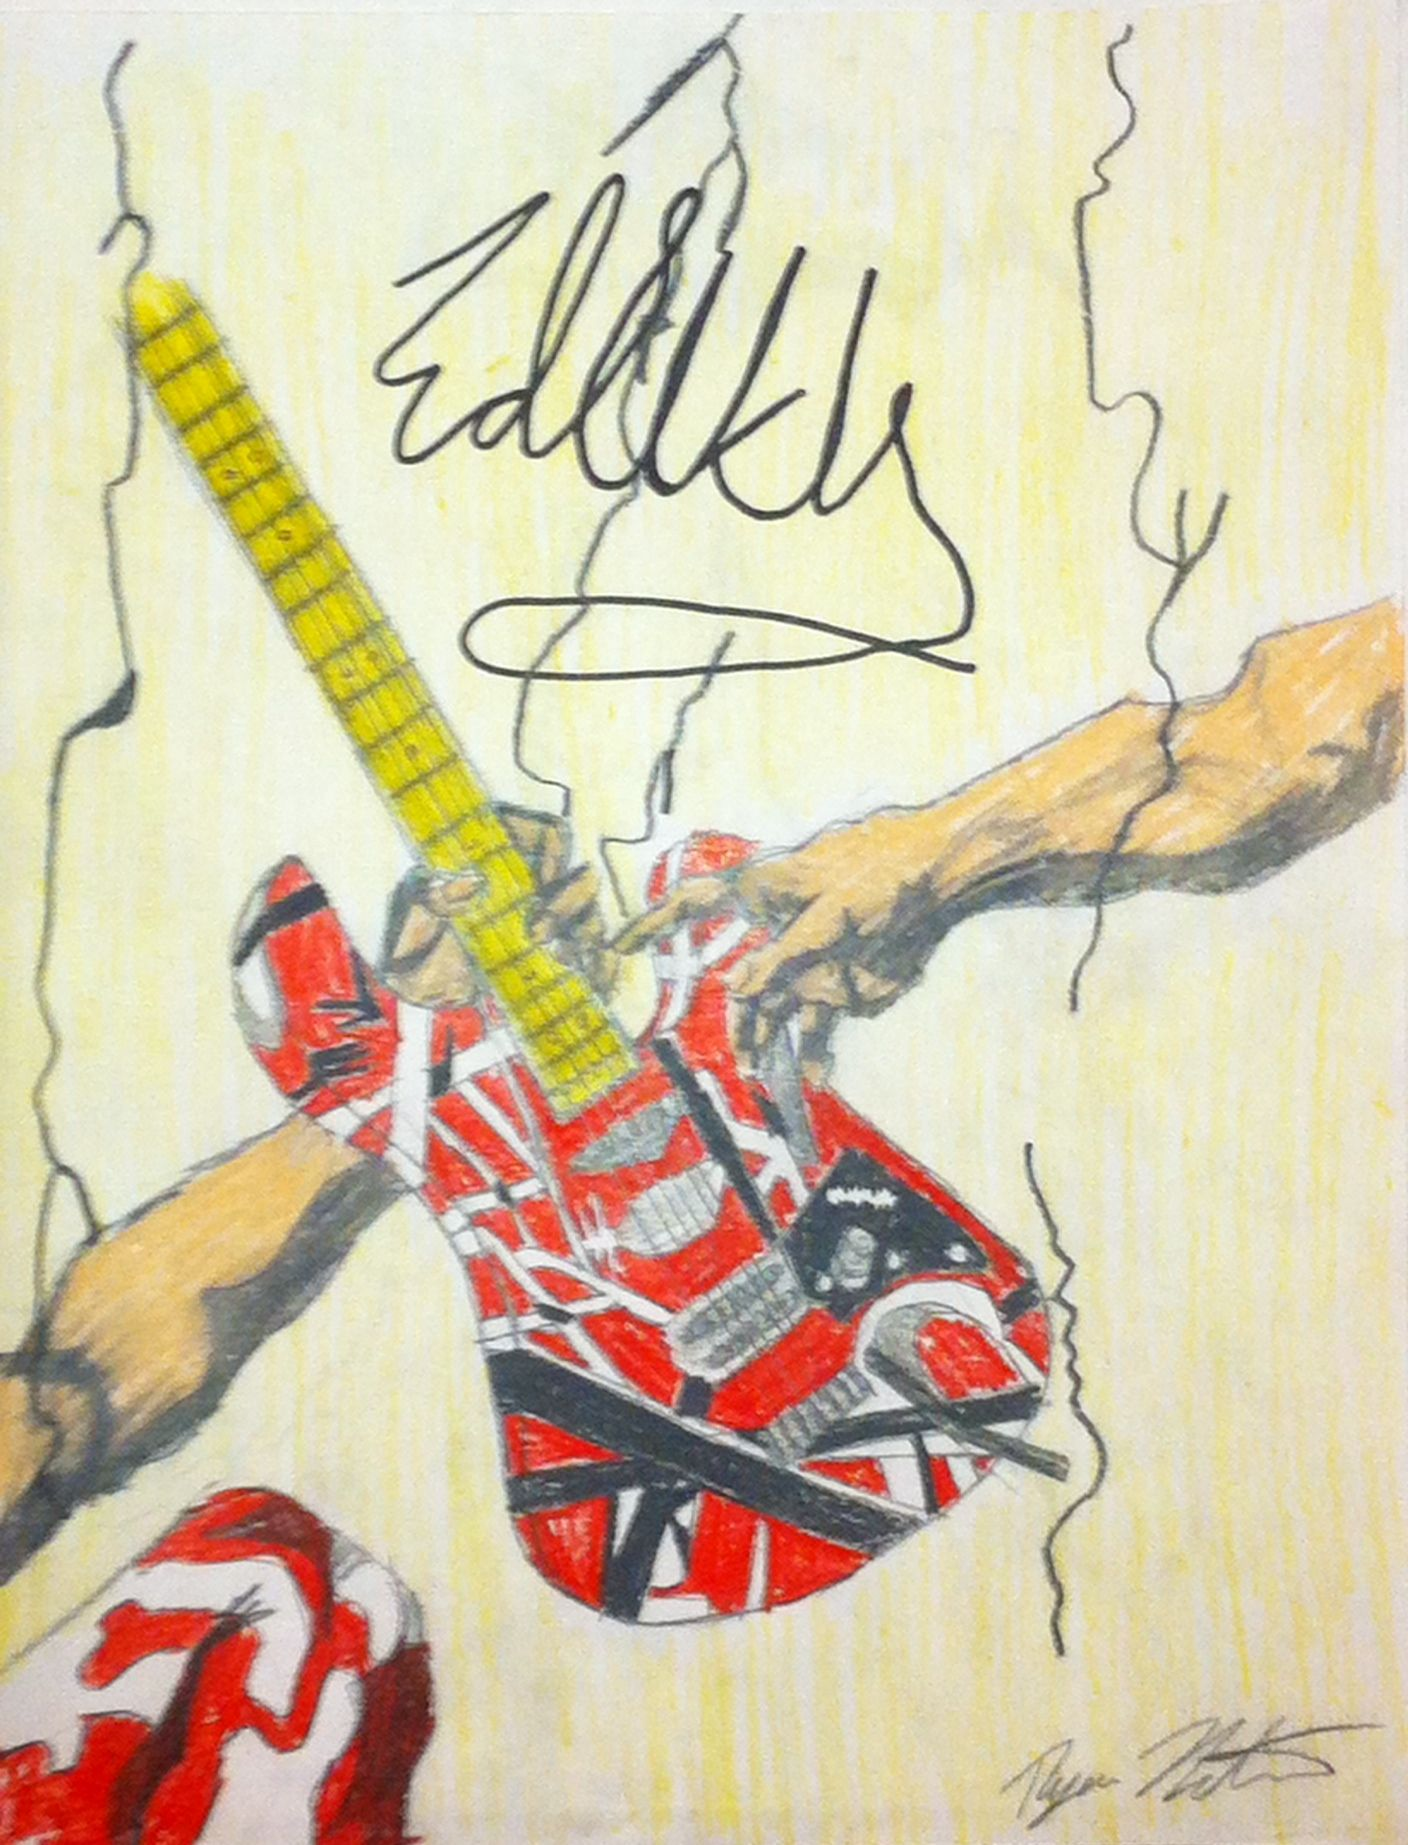 Eddie Van Halen and the Hand of God